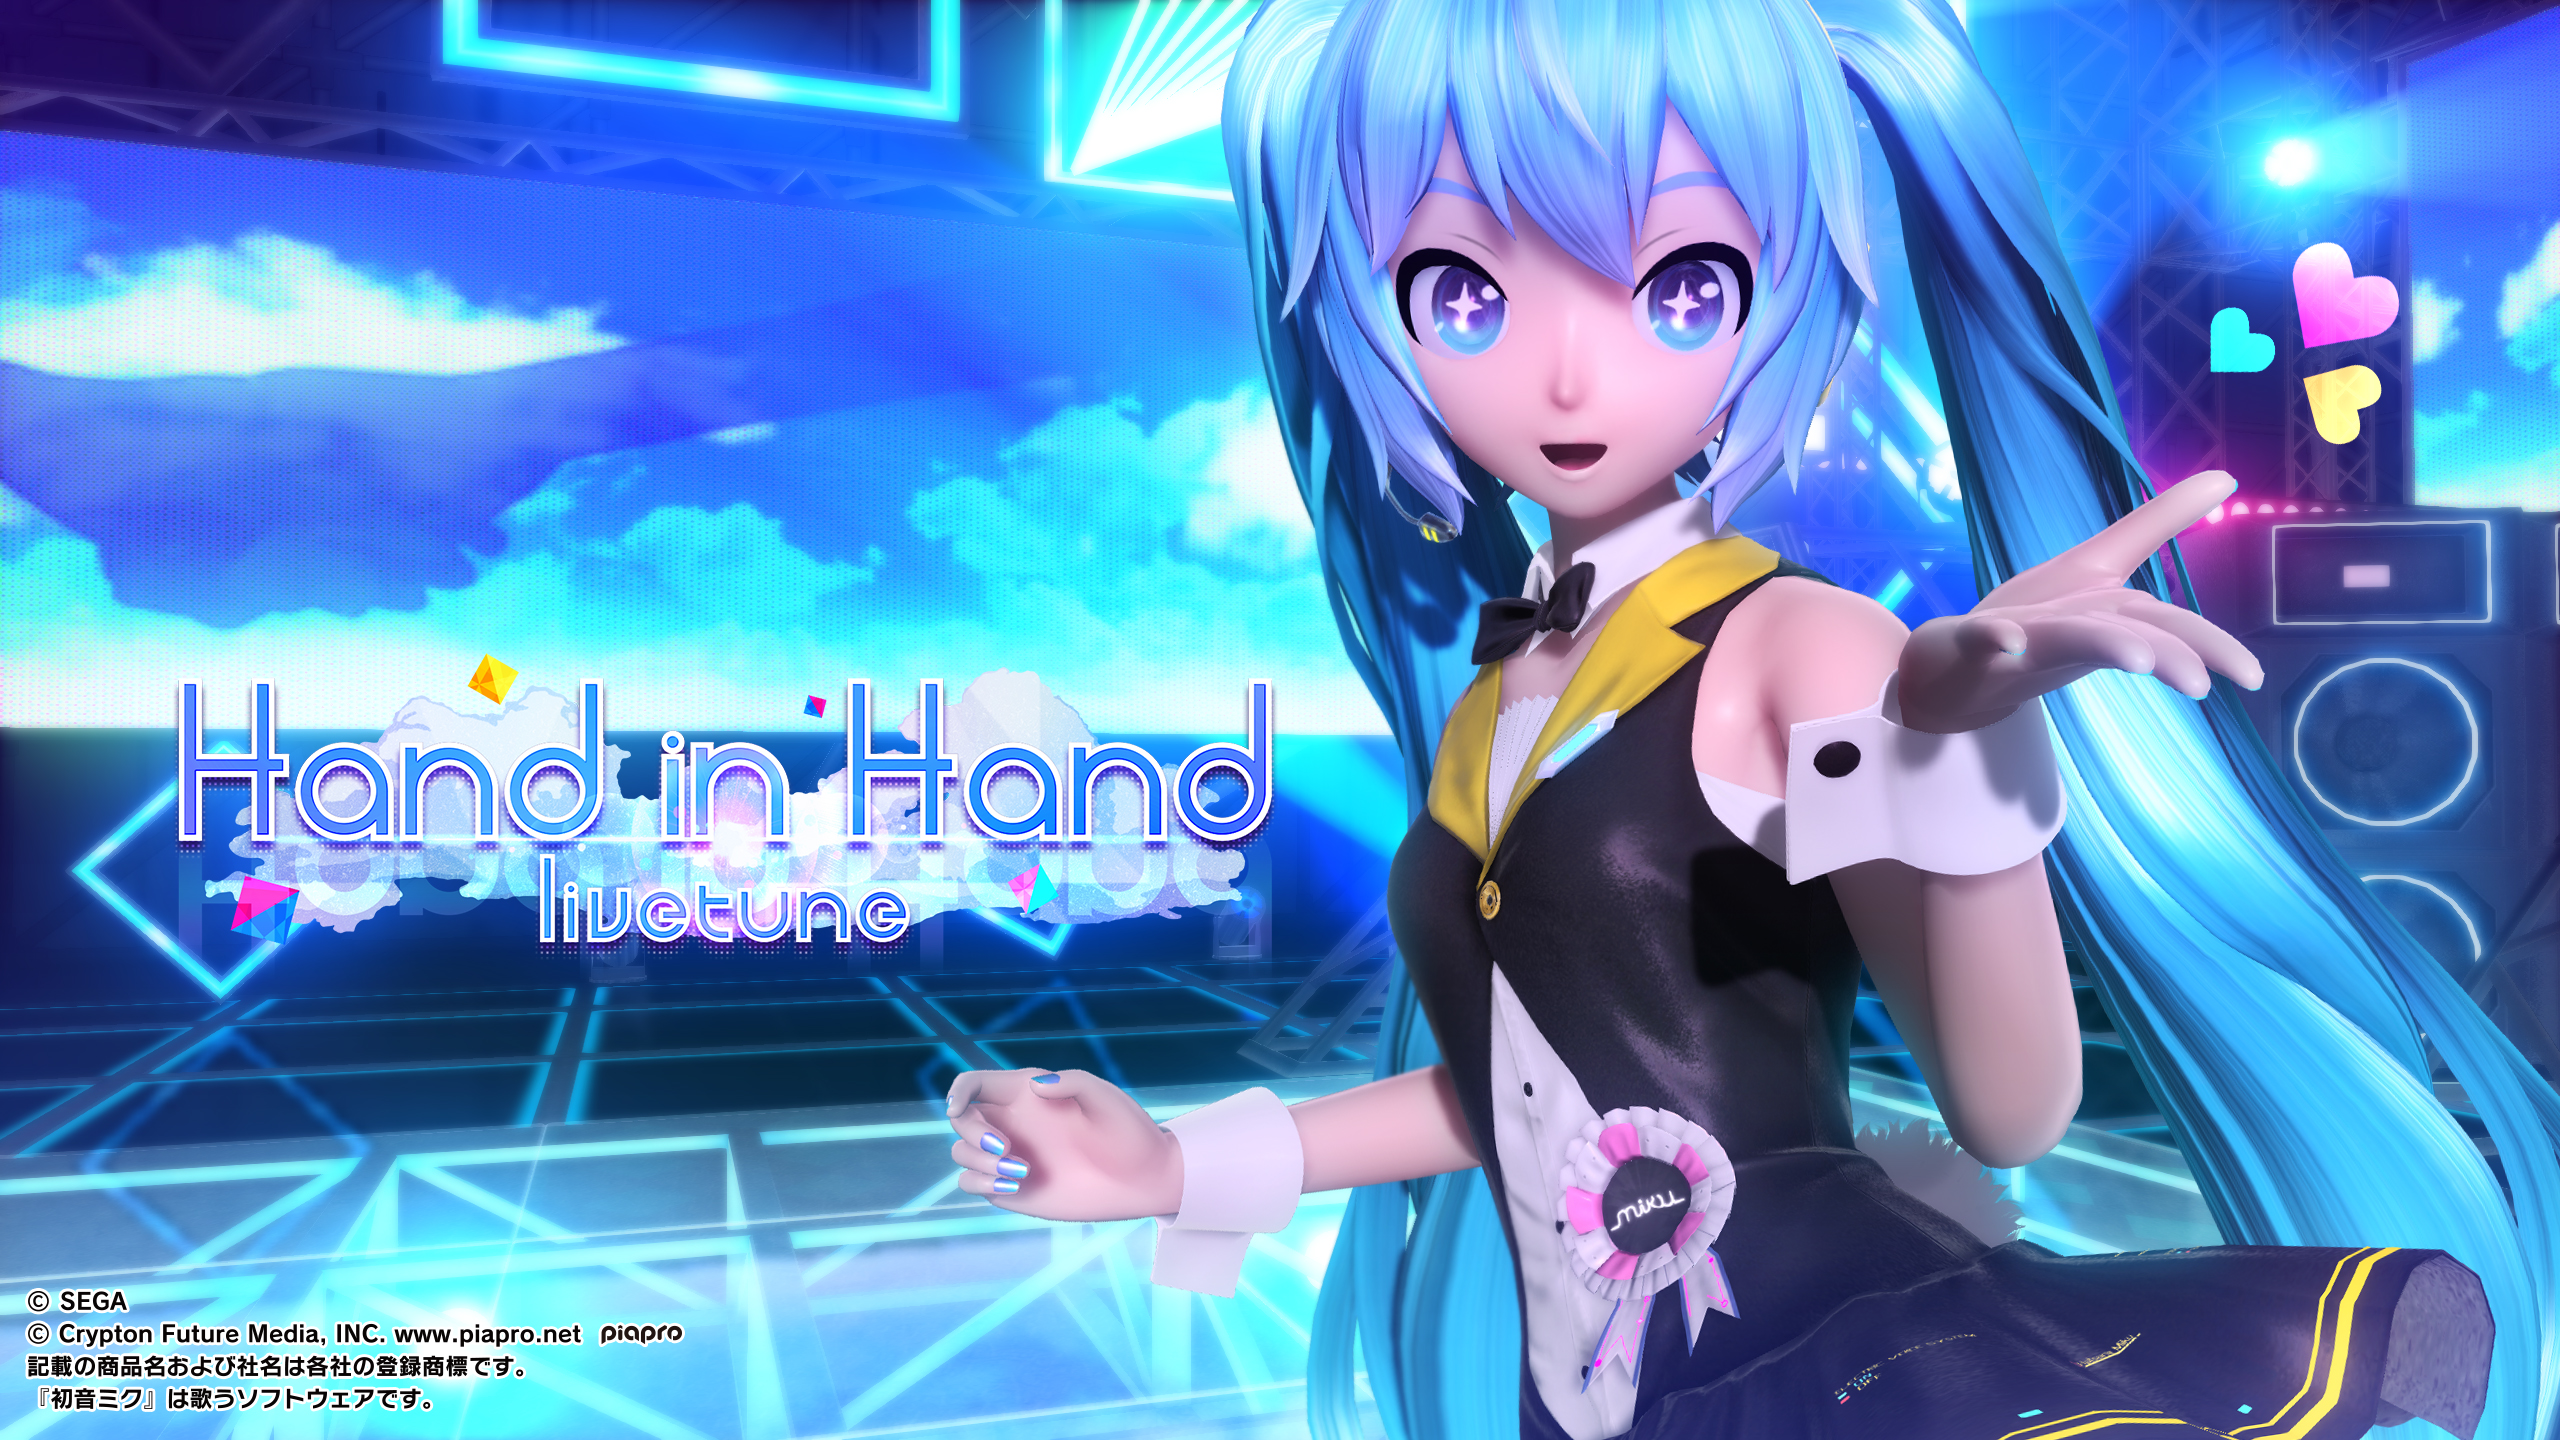 Hatsune miku project diva arcade future tone adds lol lots of laugh and hand in hand to - Hatsune miku project diva future ...